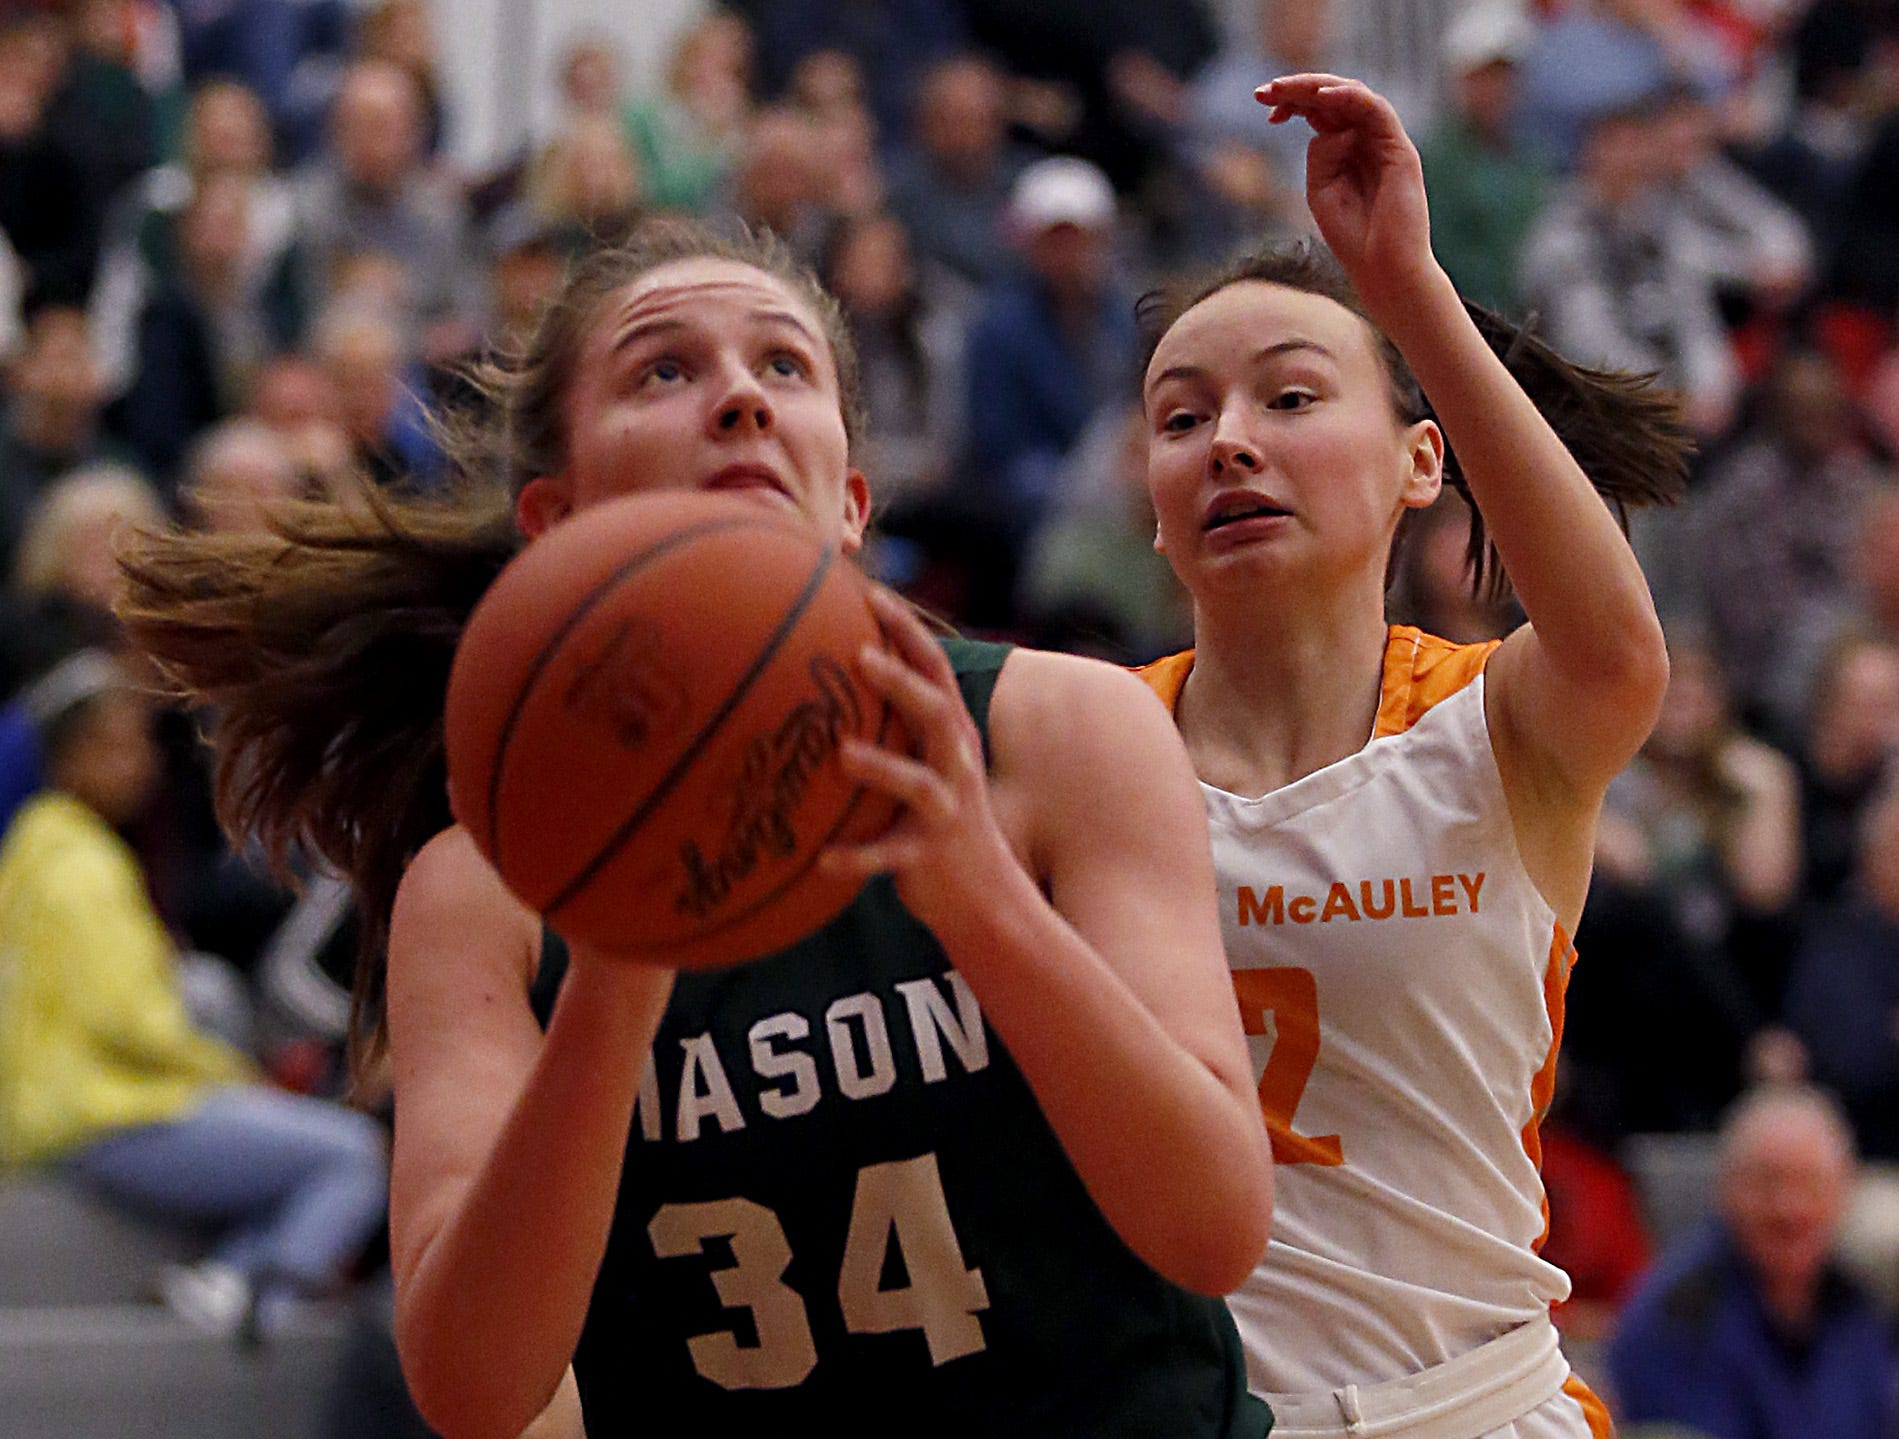 Mason's Marilyn Popplewell goes to the hoop for two against Mercy McAuley during the Southwest District Girls Division I finals at Princeton High School in Cincinnati Saturday, March 2, 2019.